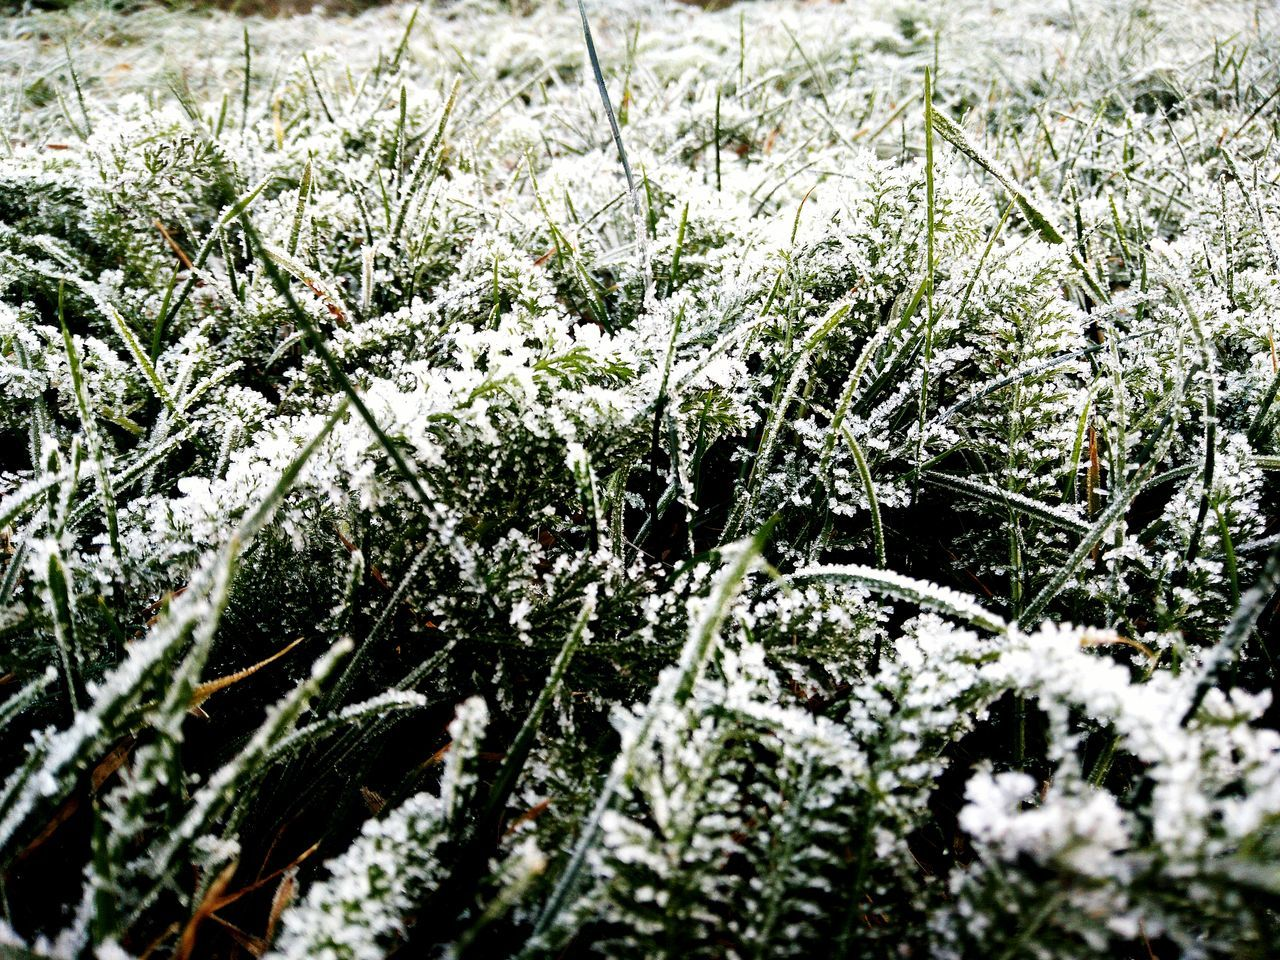 Winter is here! Nature Growth Grass Plant Beauty In Nature No People Outdoors Tranquility Close-up Day Freshness Nature Photography Amazing View Nature_collection Amazing_captures Taking Photos Enjoying The Sun AndroidPhotography Sun My Year My View Wet Raindrops Freezing Freezing Cold Freezing ❄